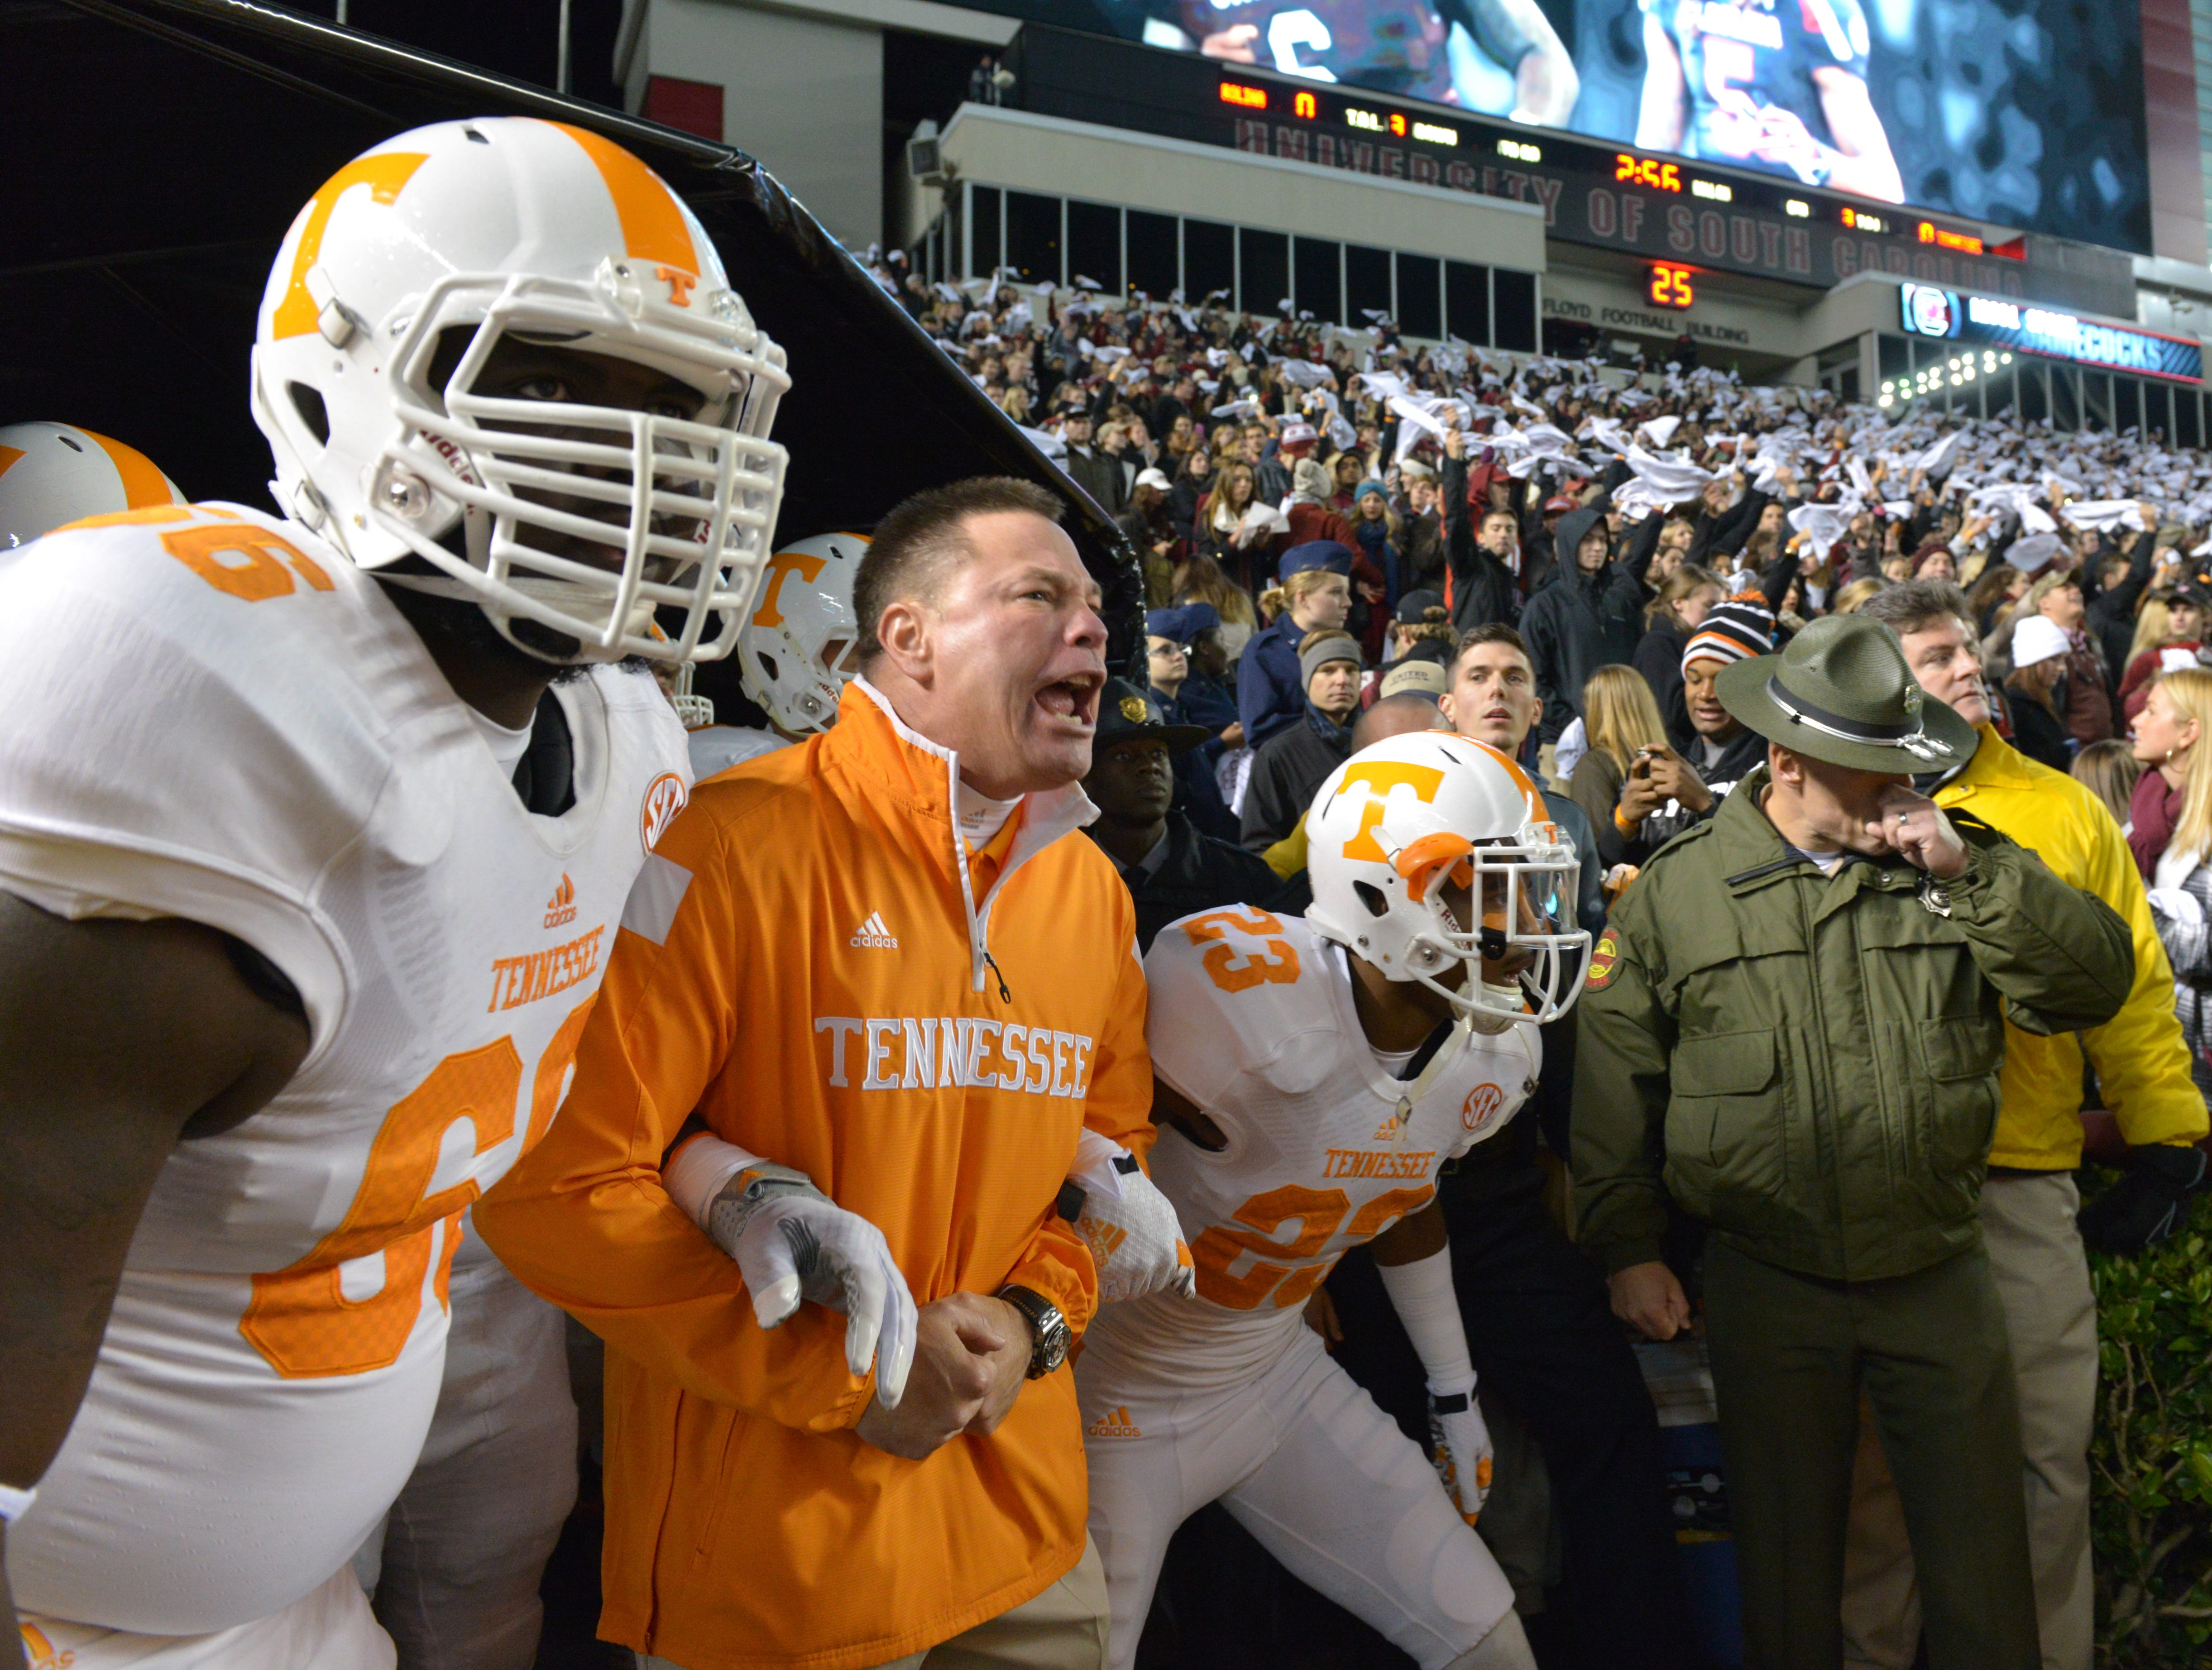 Tennessee coach Butch Jones ready to take the field  against South Carolina in Williams-Brice Stadium Saturday, Nov. 1, 2014 in Columbia, S.C